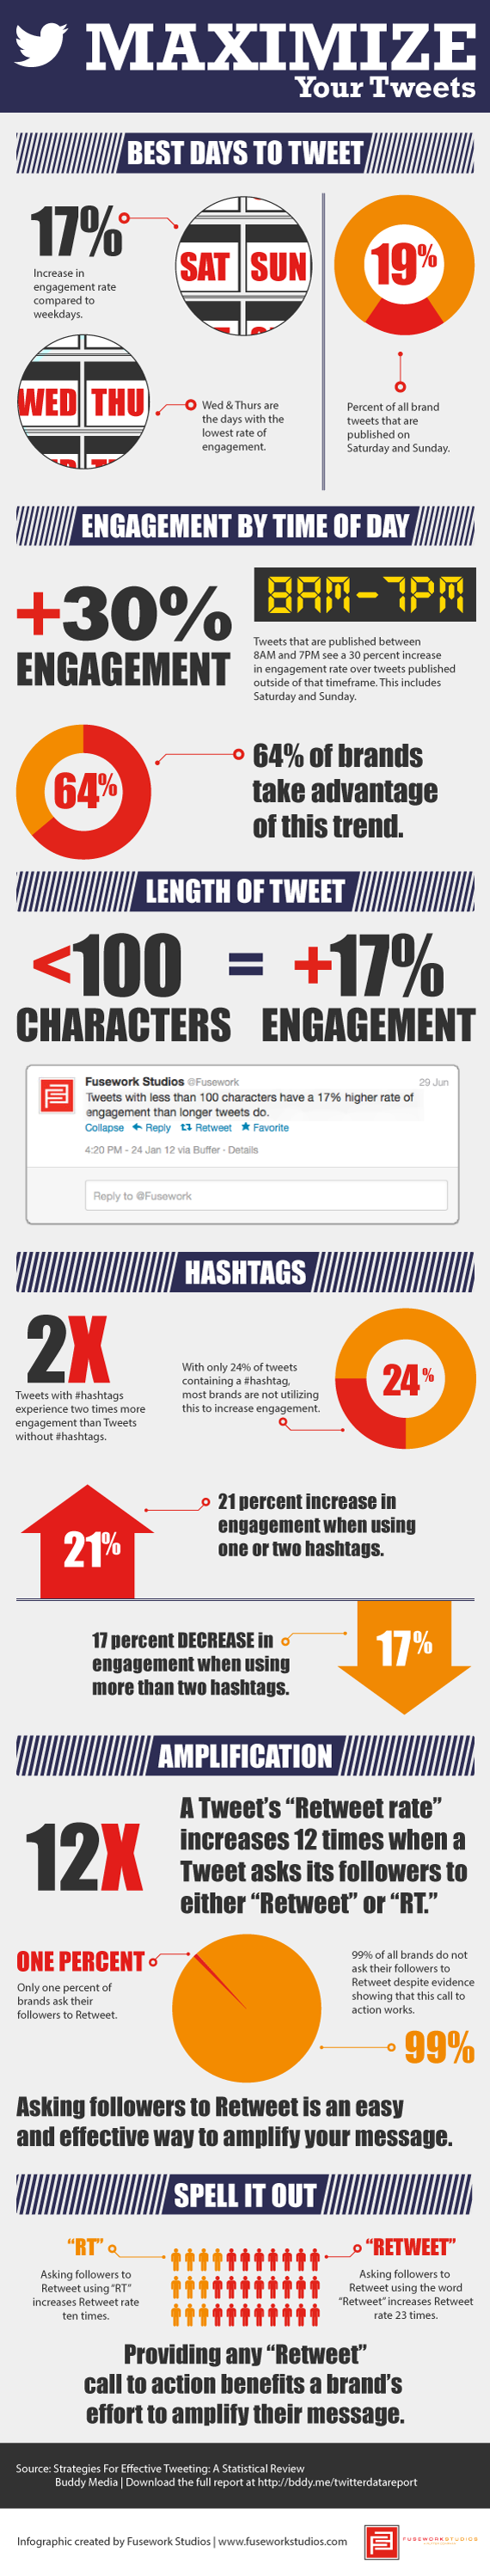 maximizing-your-tweets-infographic